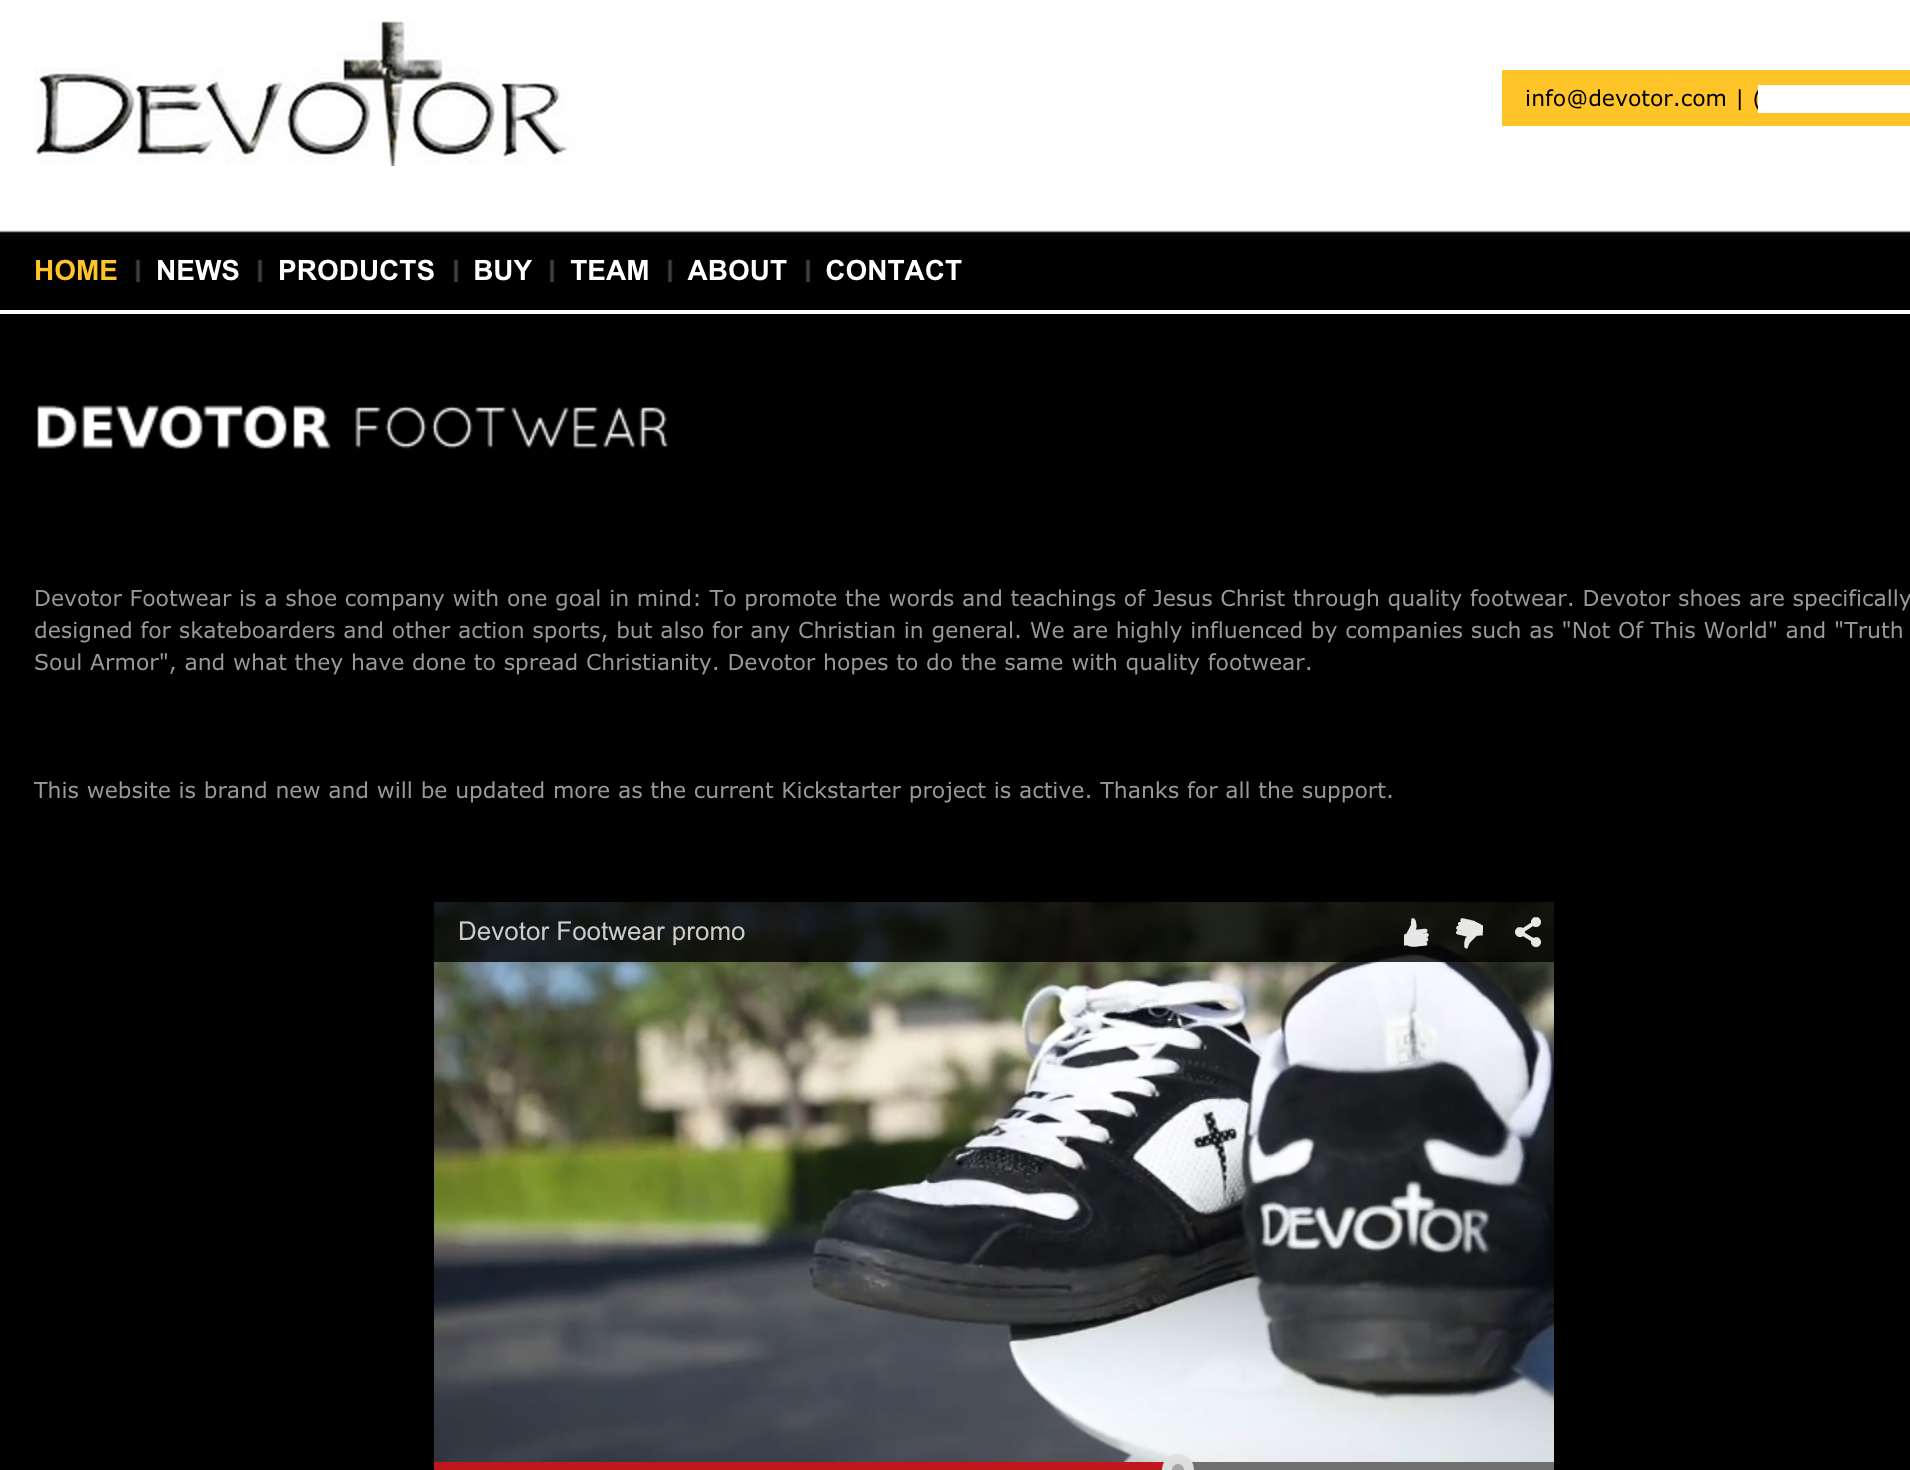 Devotor Footwear's site was fully live earlier today; as of press time, some of its pages appear to have been taken offline.